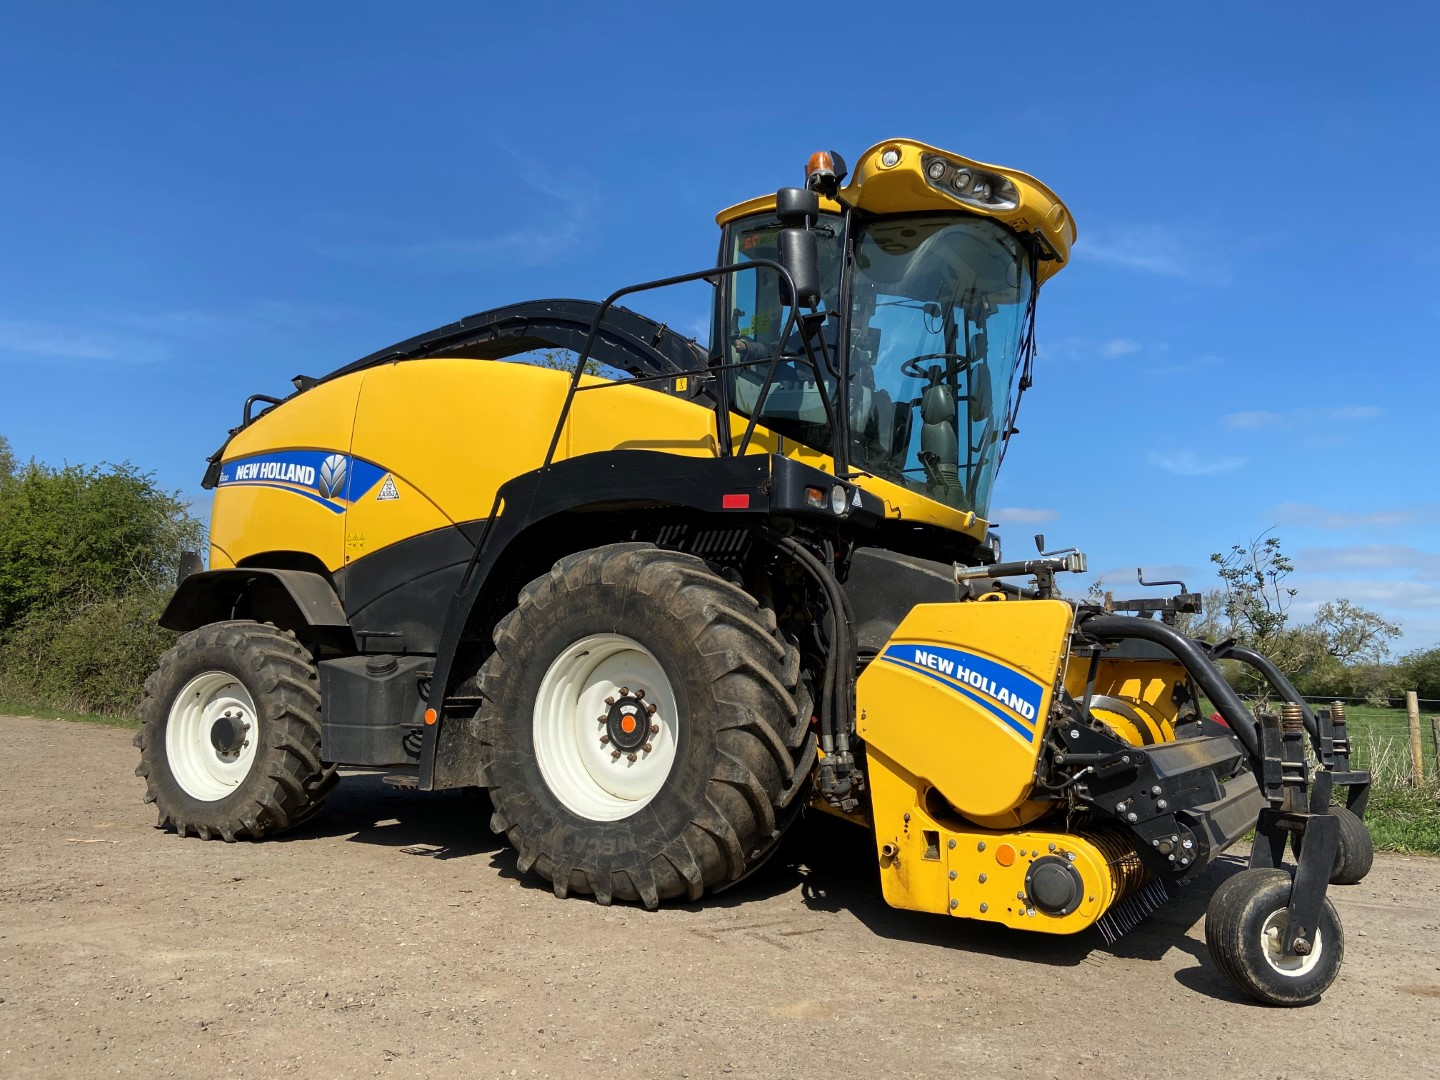 NEW HOLLAND FR600 T3